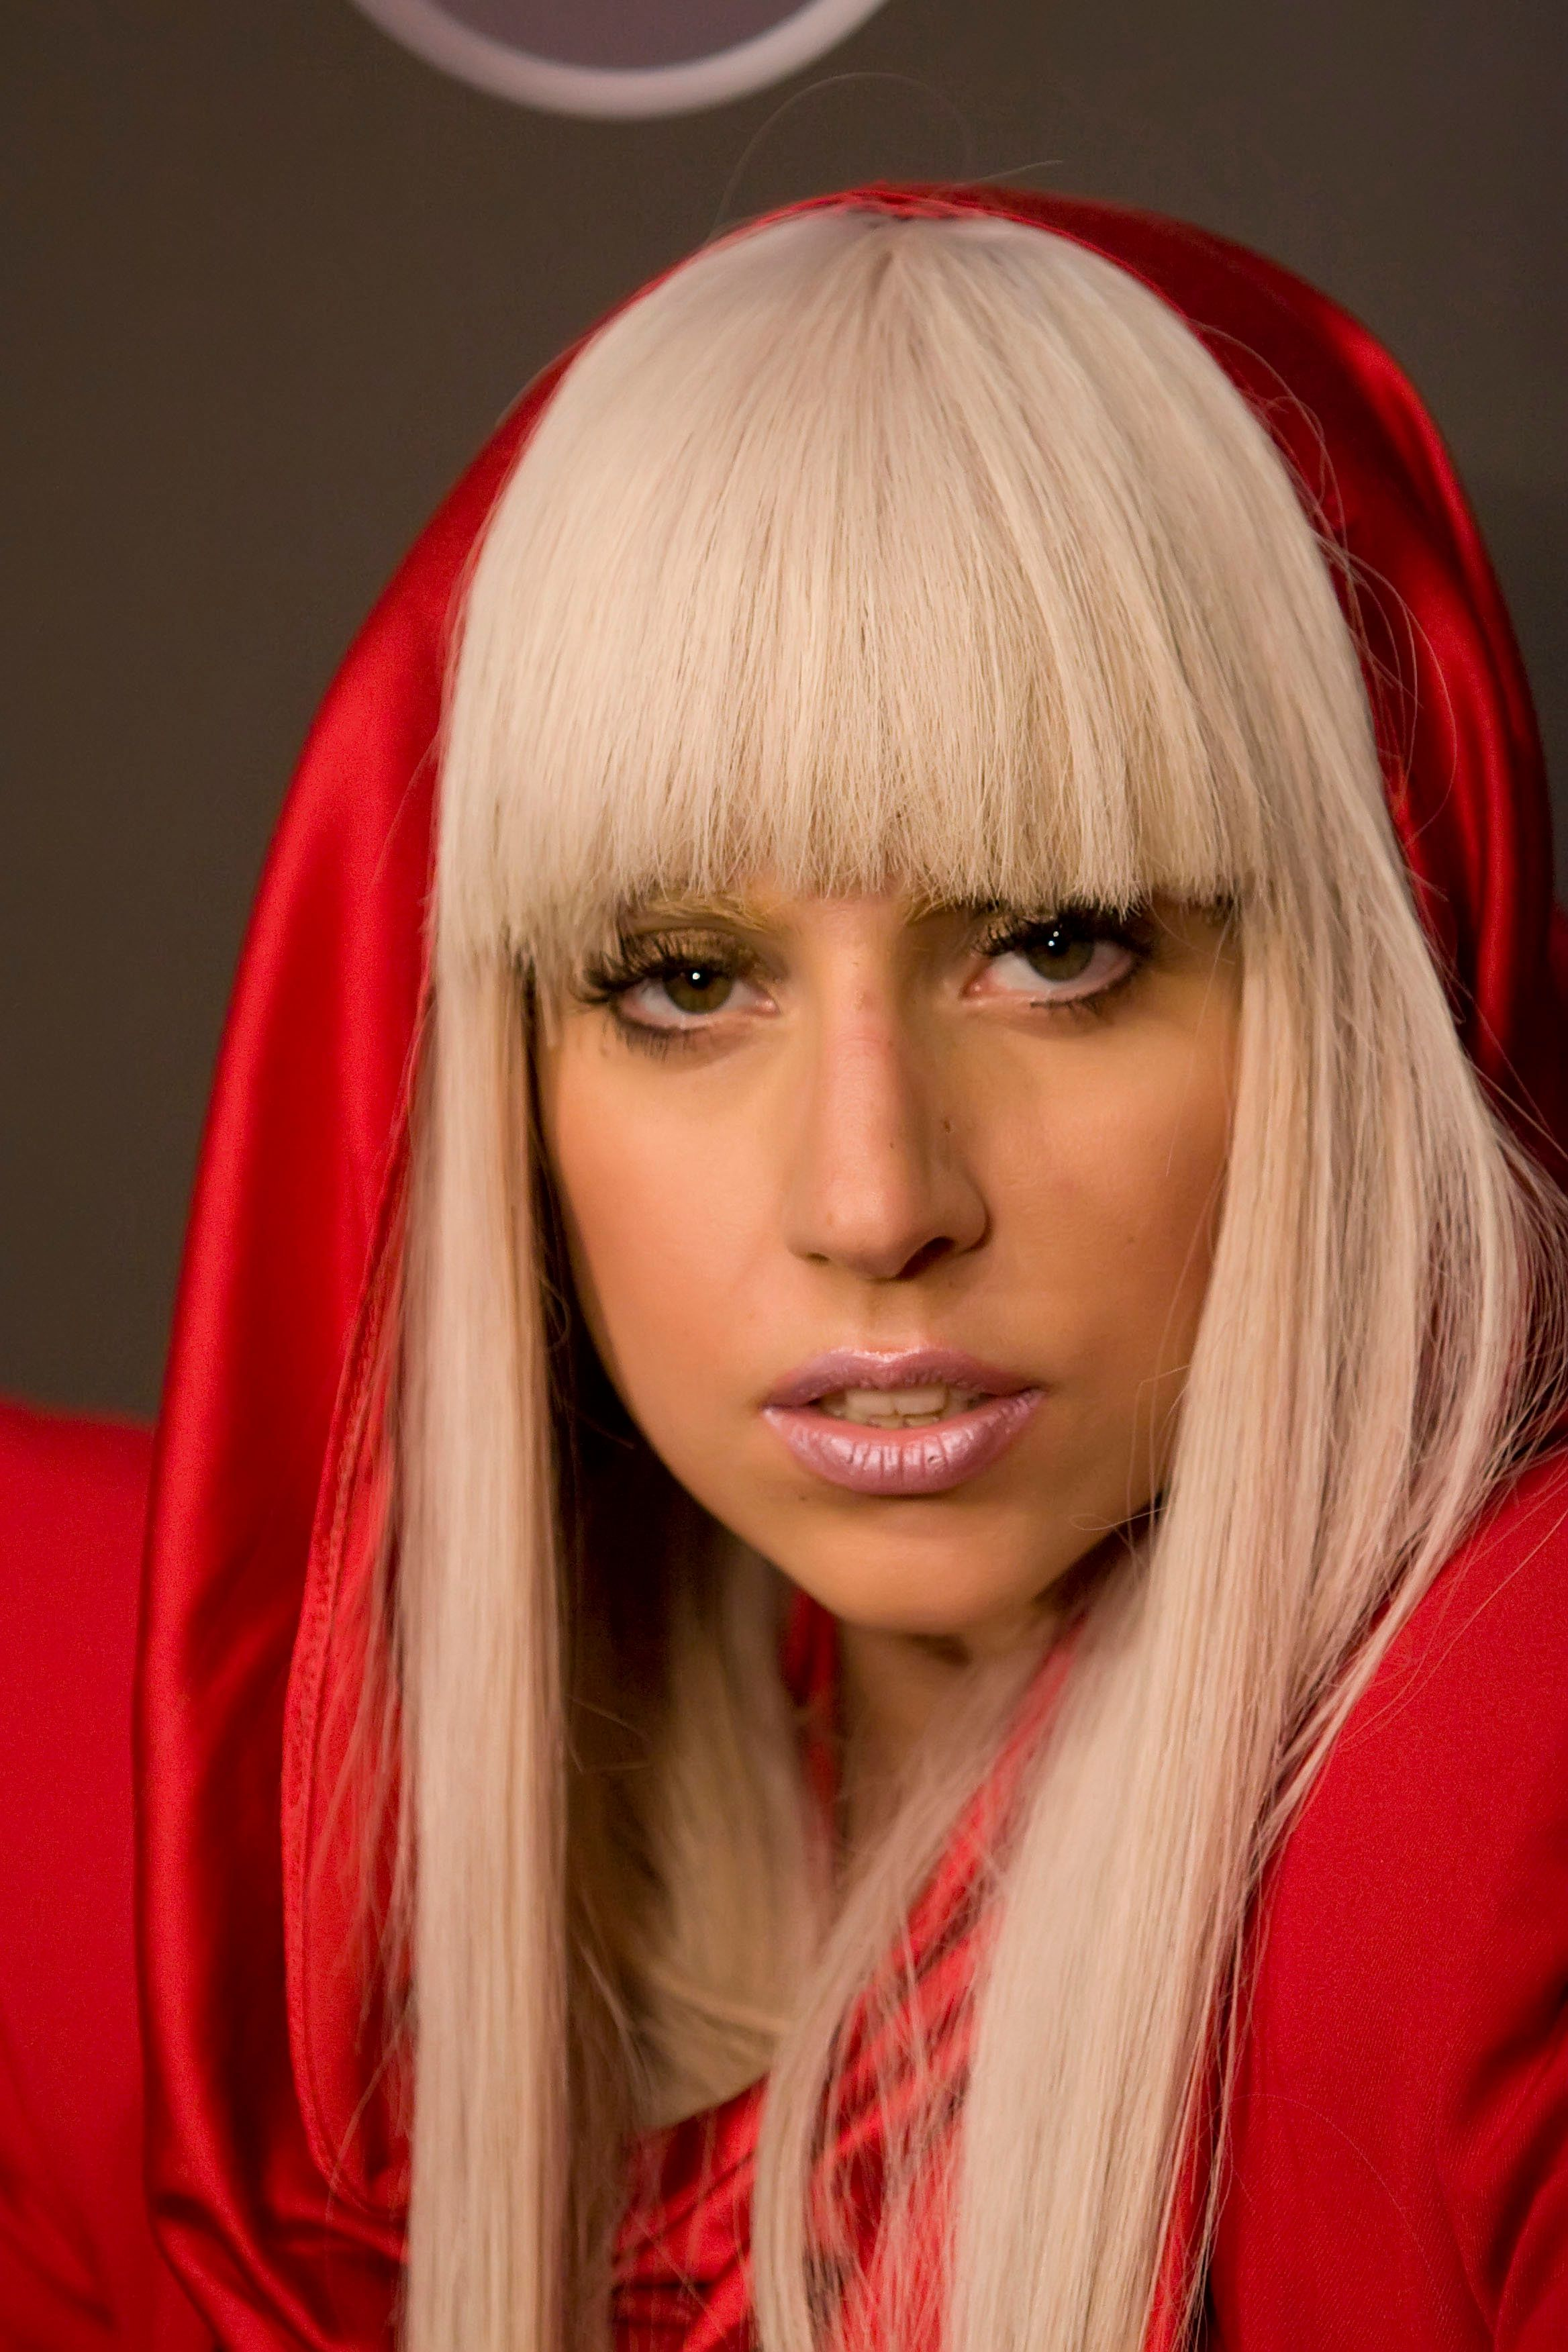 16 Lady Gaga Moments You'd Forgotten During Her 10 Year